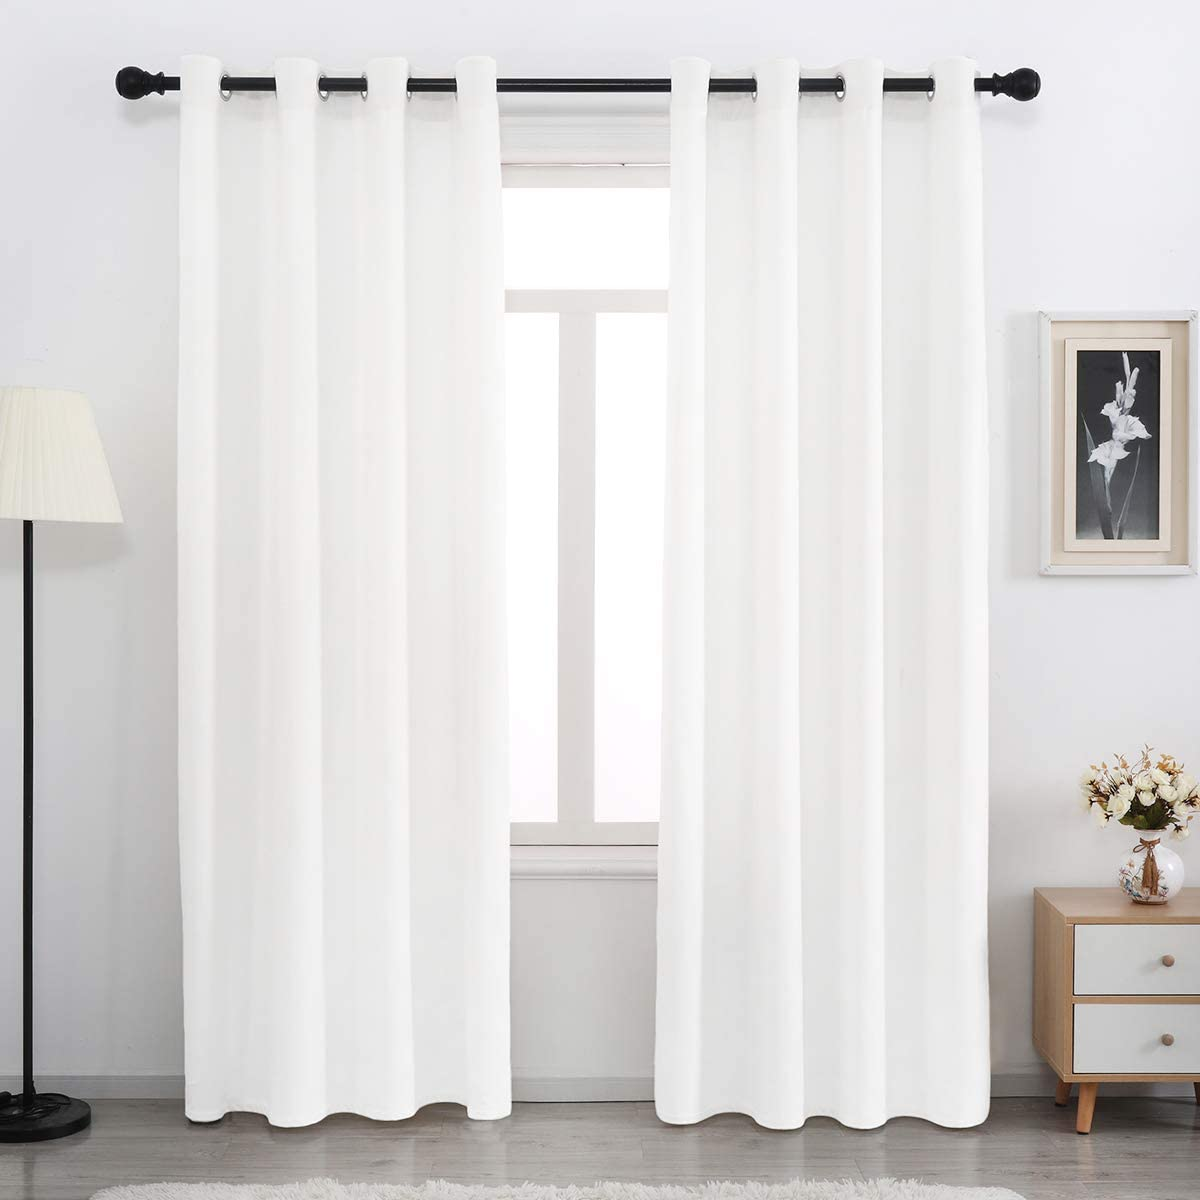 SPXTEX Bleach White Velvet Max 54% OFF Curtains inches Soft 100% quality warranty! Long 96 C